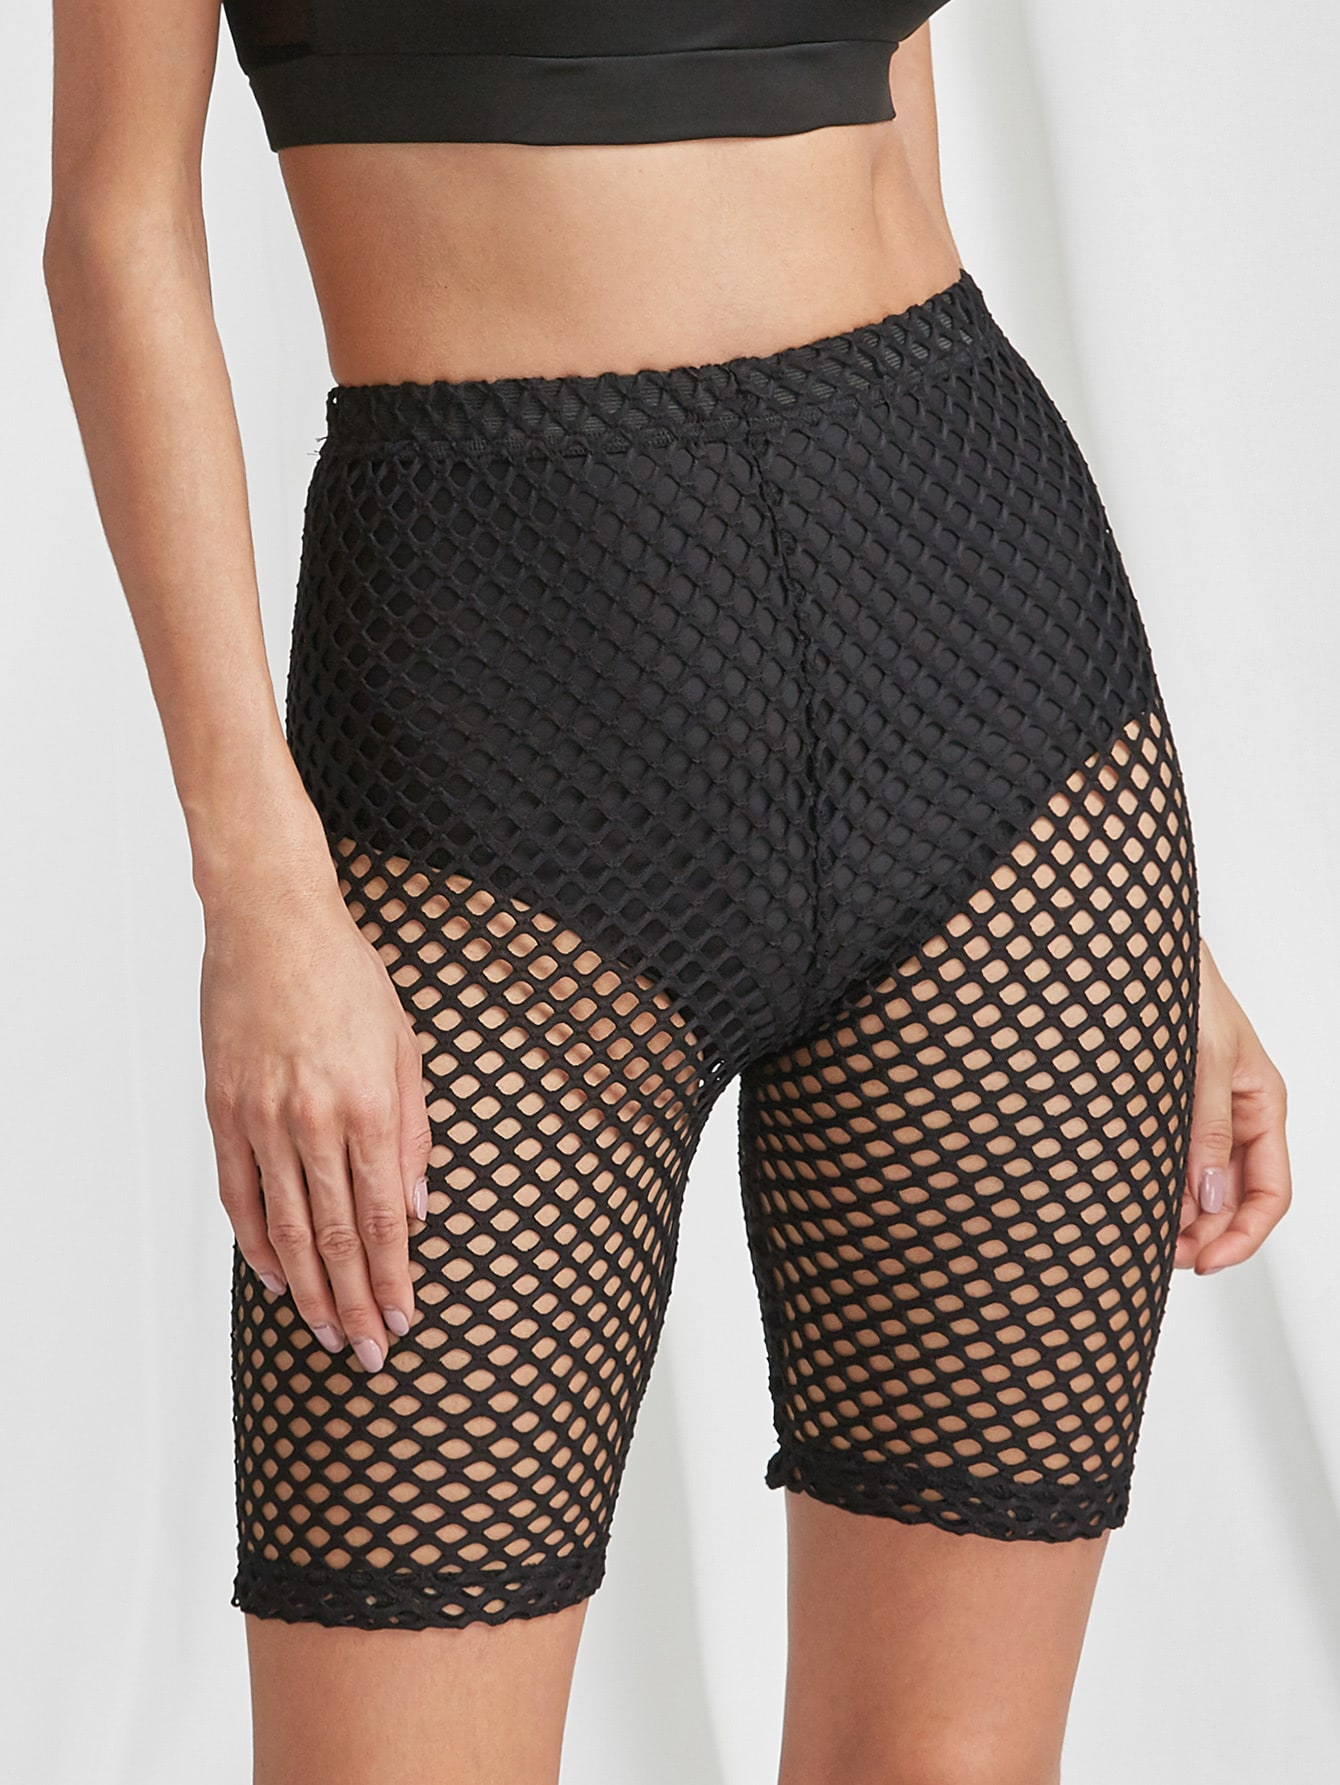 High Rise Fishnet Short Leggings